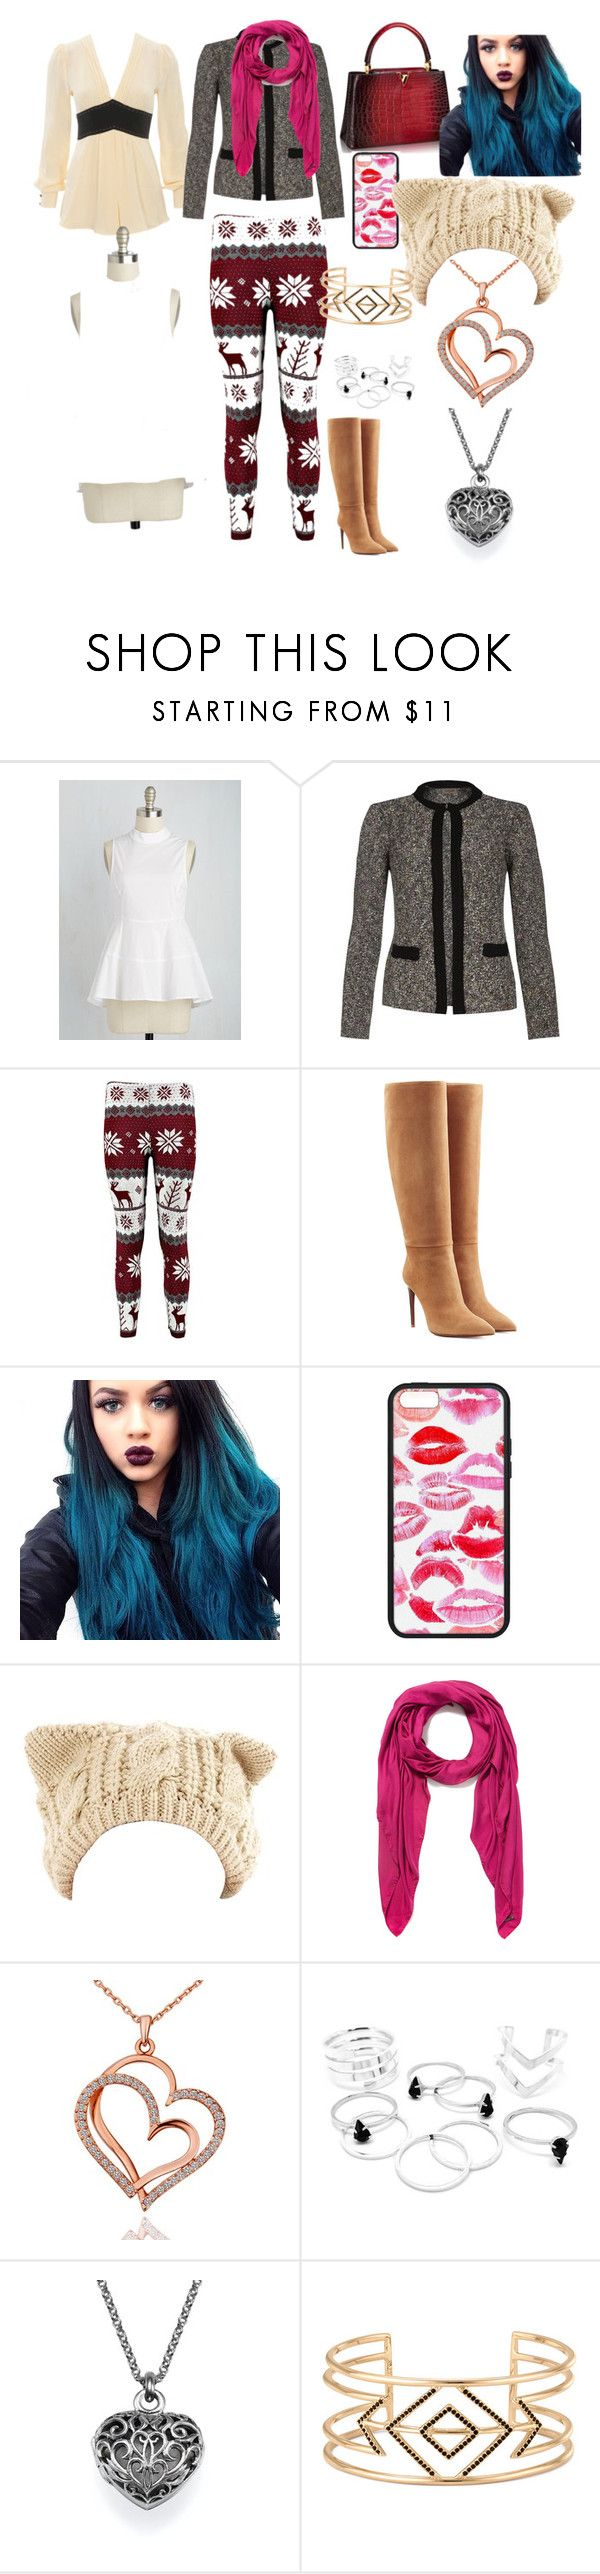 """""""Canada Valentine's Day"""" by lillianrose5055 ❤ liked on Polyvore featuring Ralph Lauren Collection, Faliero Sarti and Stella & Dot"""